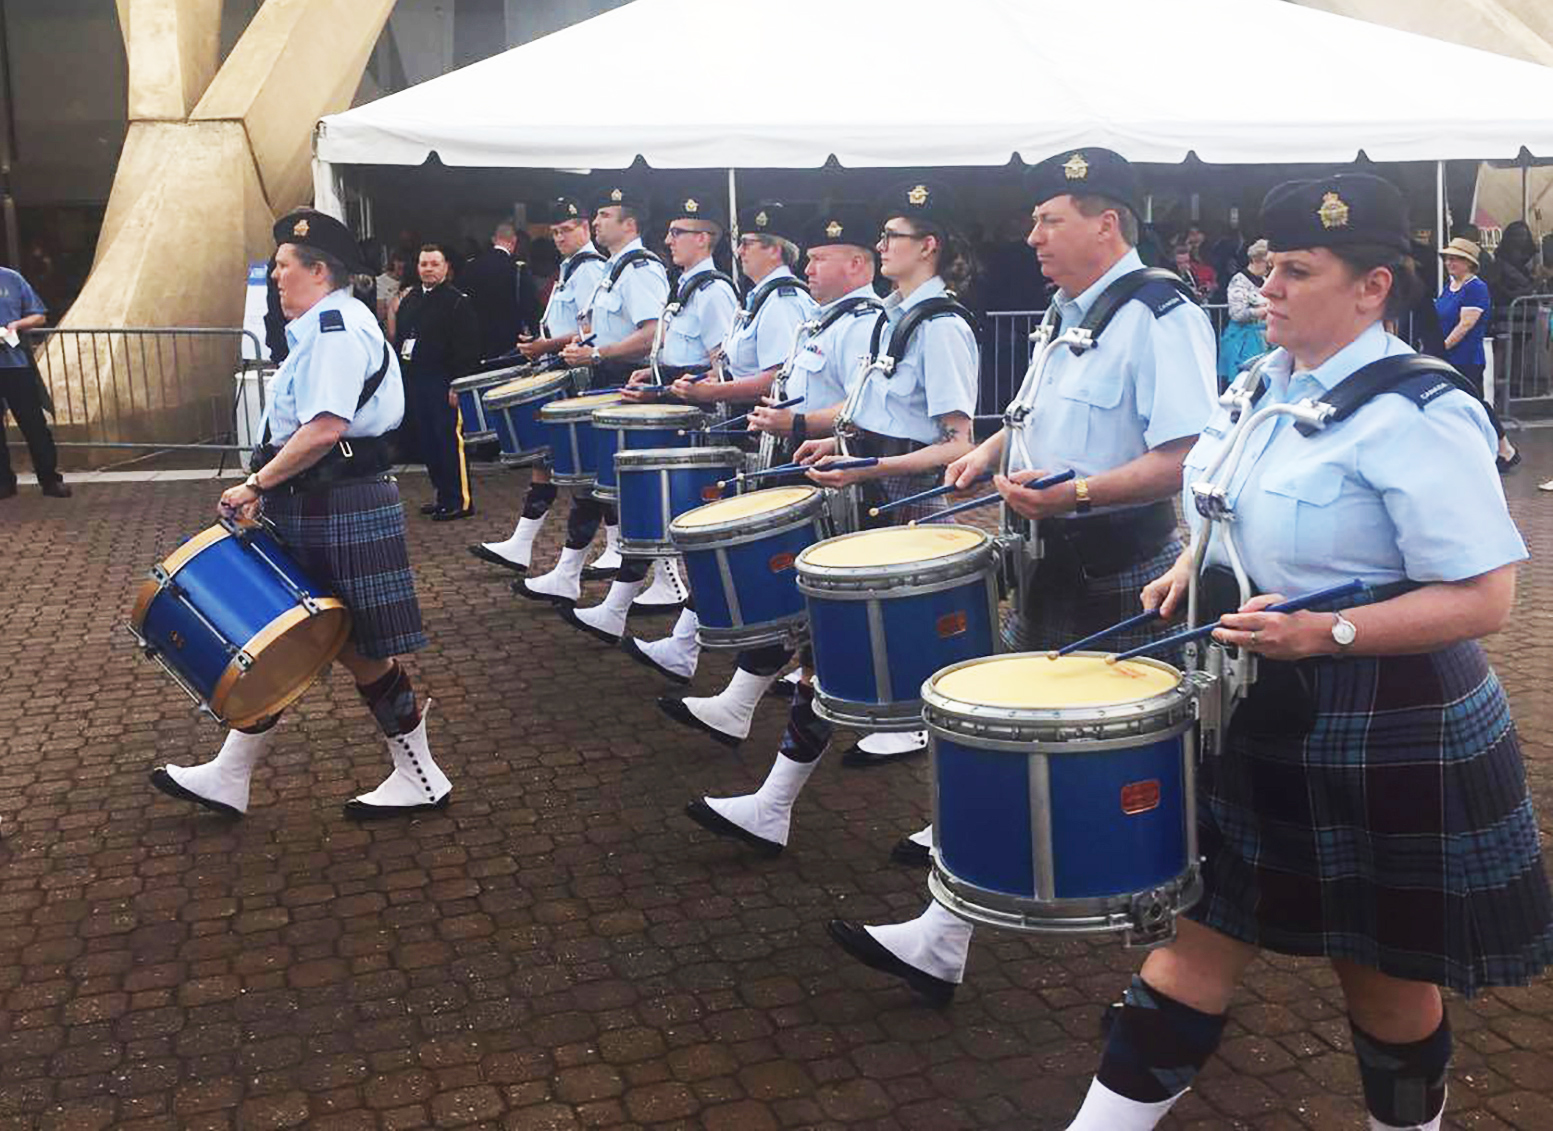 The RCAF drum line steps off during a Hullabaloo performance outside the Scope Centre in Norfolk, Virginia, on April 28, 2016, as part of the Virginia International Tattoo. PHOTO: Madeline Postle